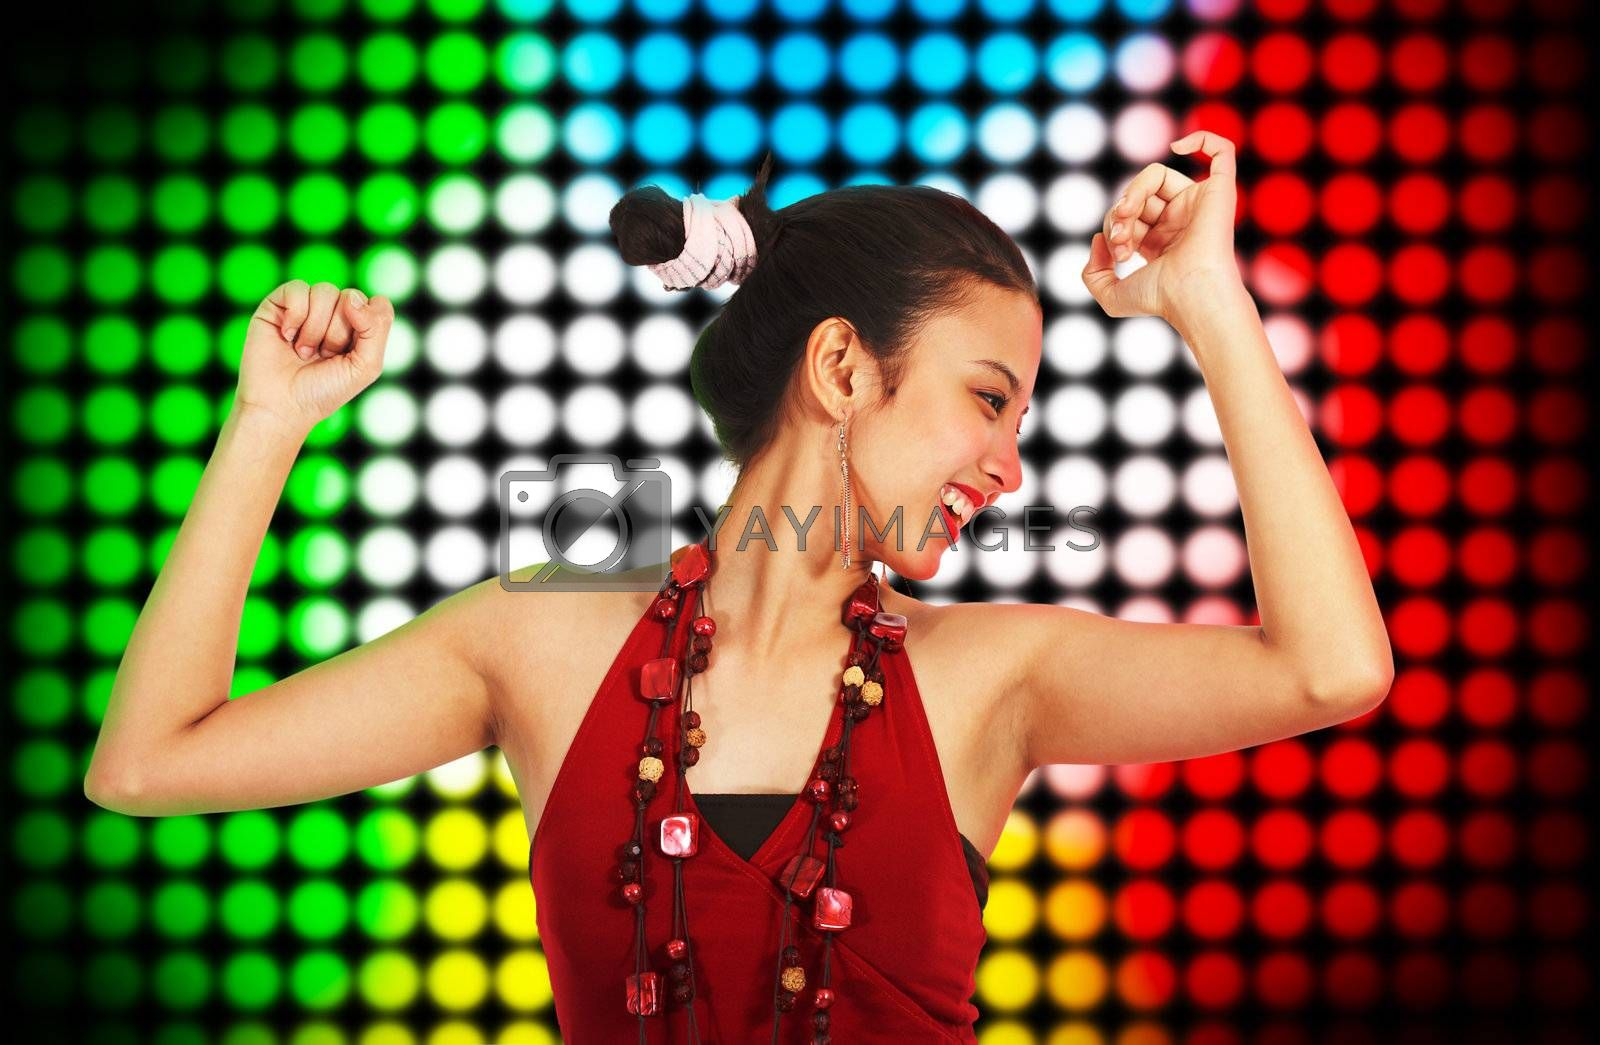 Beautiful Young Woman Dancing At A Club With Multicolored Spotlights Background